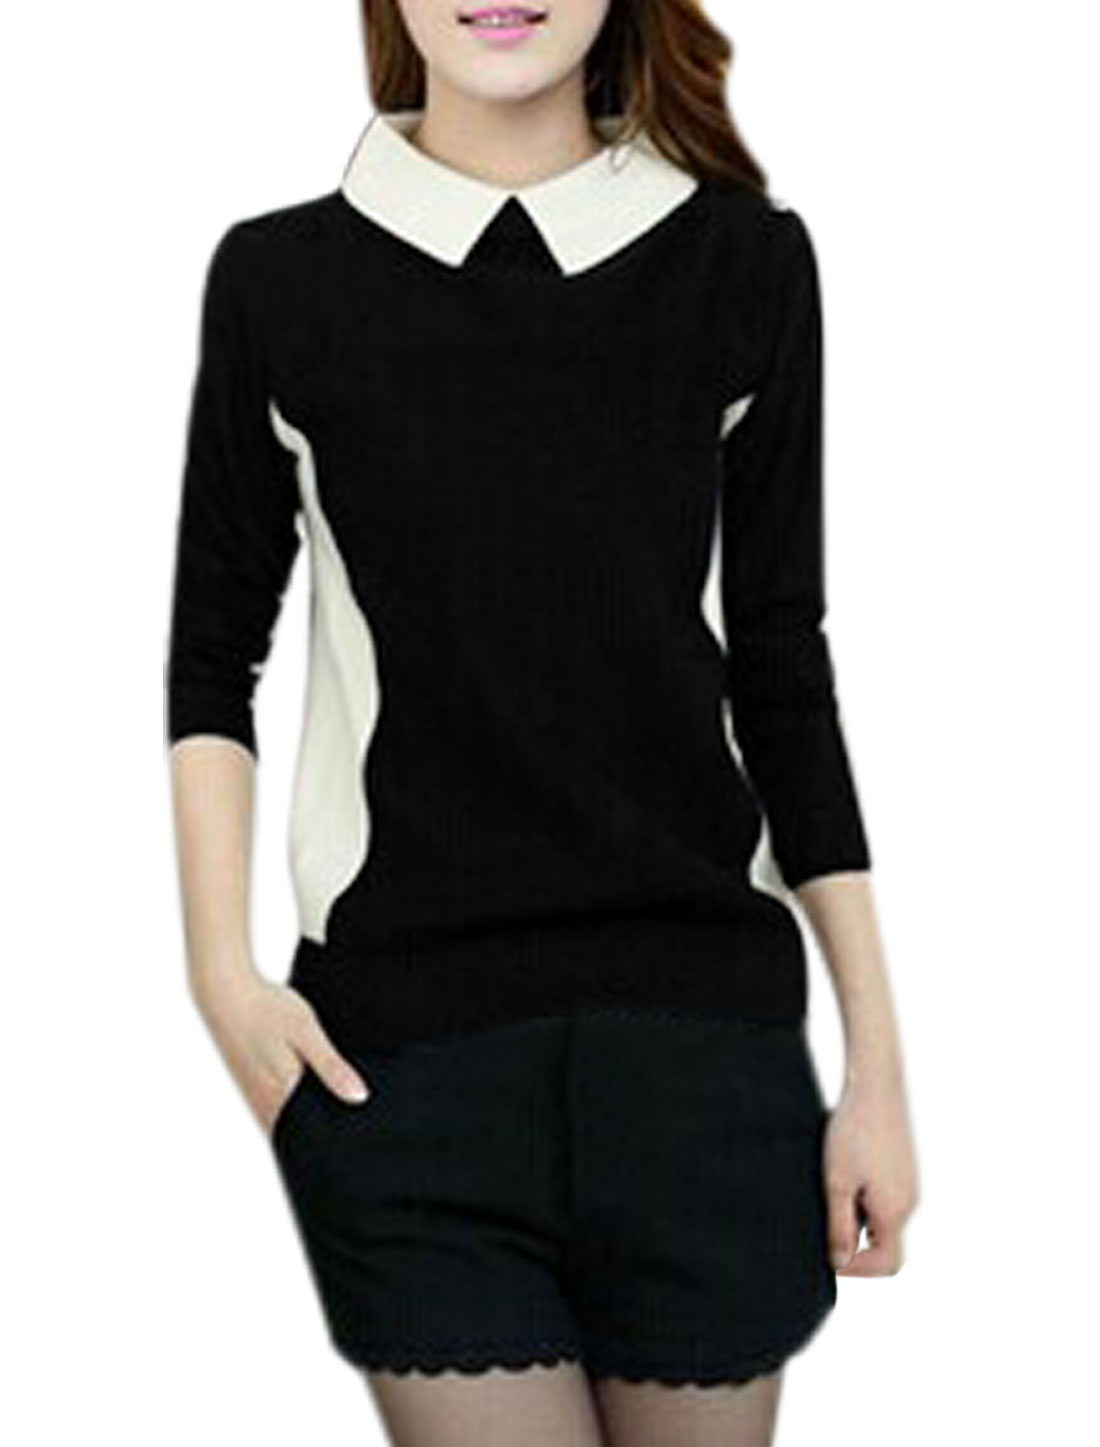 Lady Point Collar One Button Closure Back Color Block Knit Shirt Black M